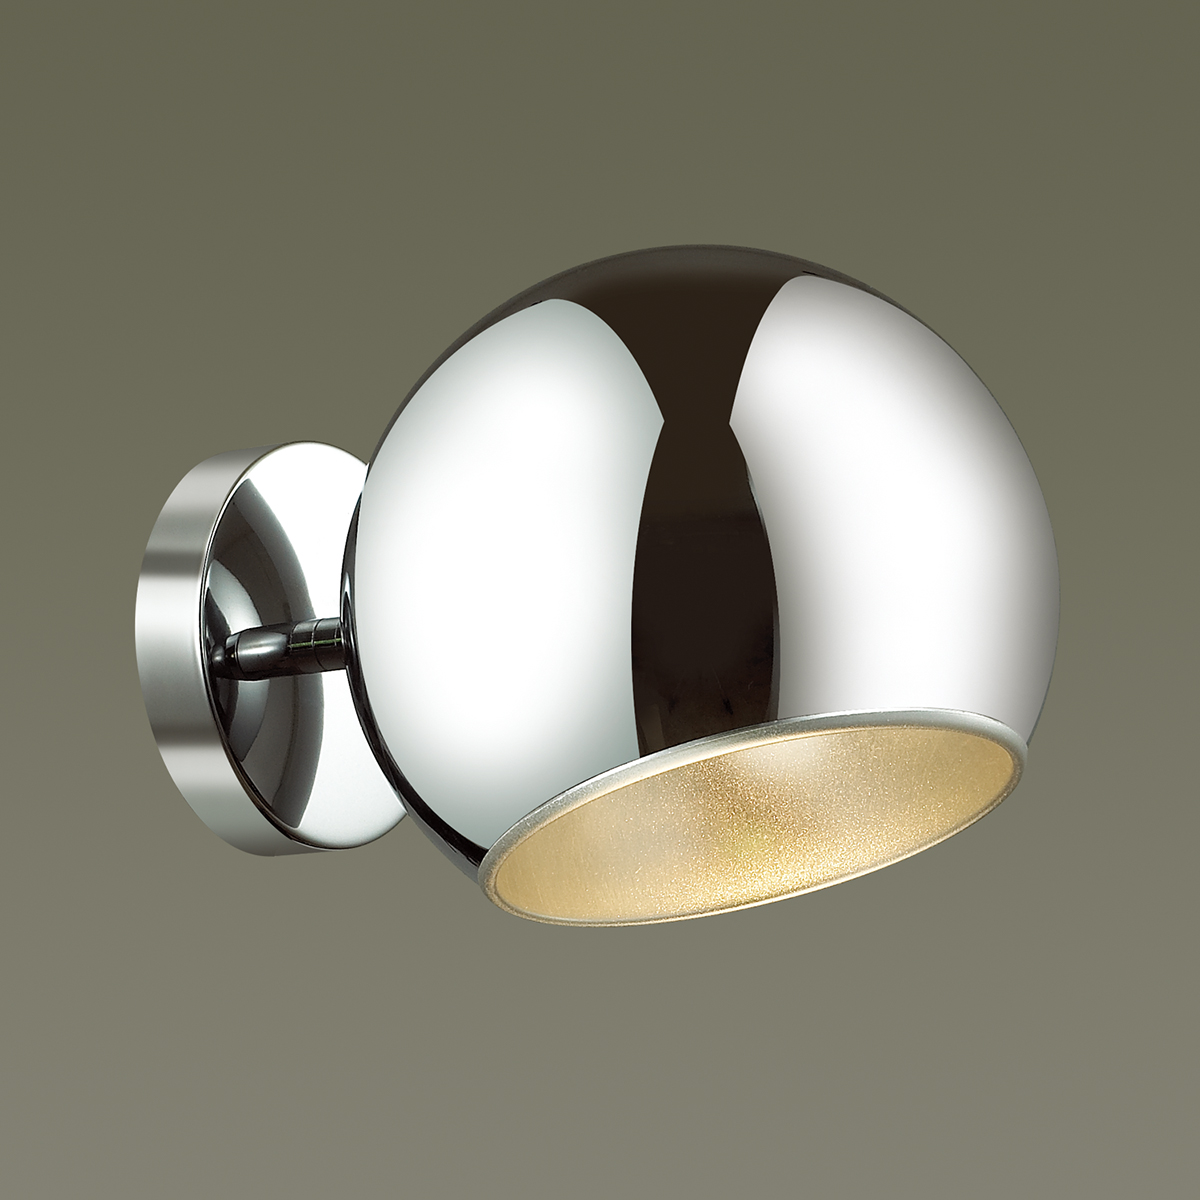 Бра ODEON LIGHT арт. 3972/1W